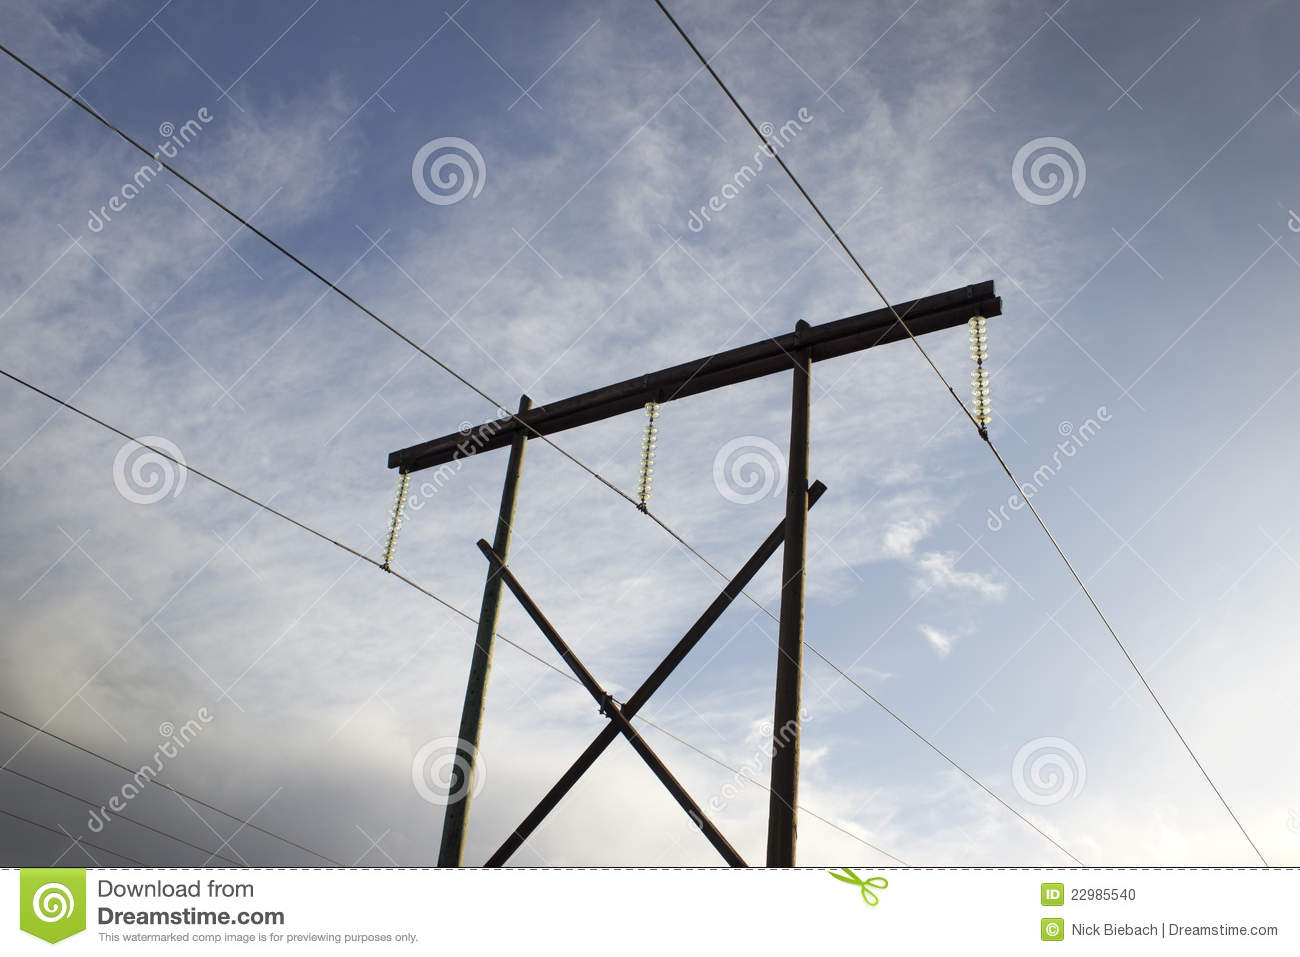 High Voltage Electrical Lines : High voltage power lines stock photo image